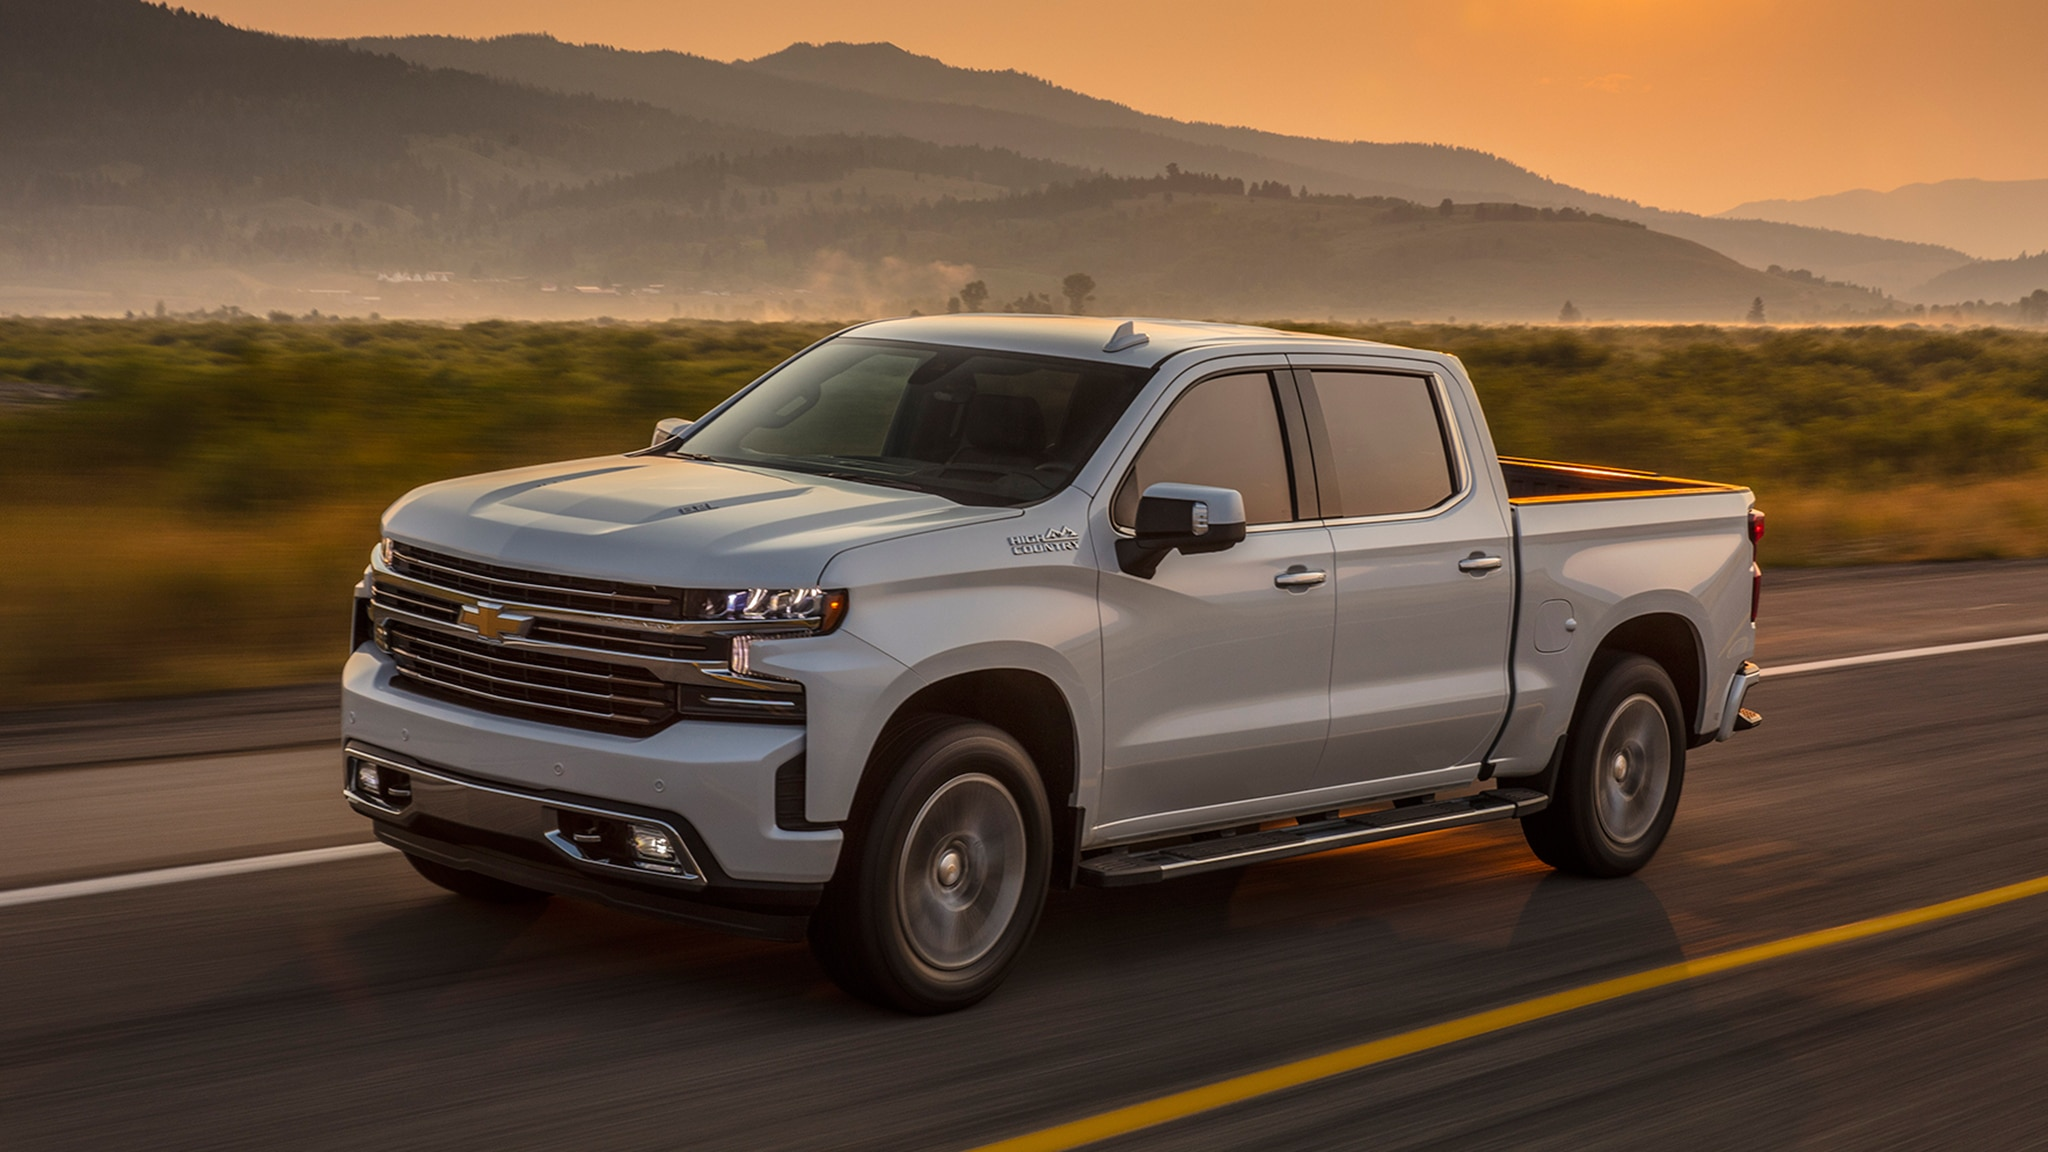 2019 chevrolet silverado high country first drive review. Black Bedroom Furniture Sets. Home Design Ideas